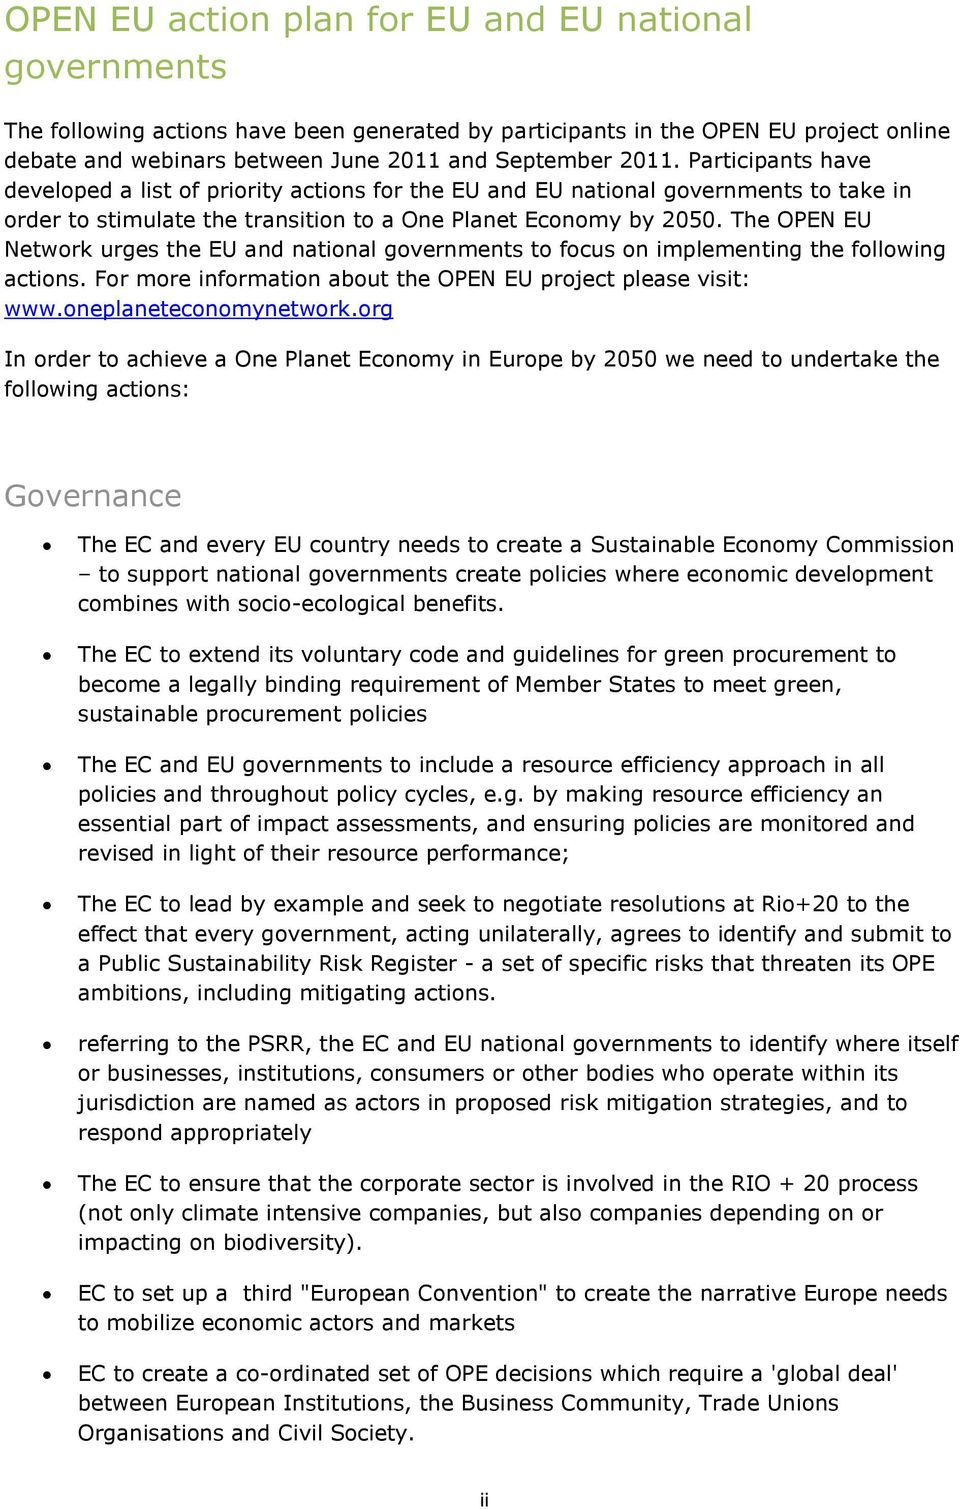 The OPEN EU Network urges the EU and national governments to focus on implementing the following actions. For more information about the OPEN EU project please visit: www.oneplaneteconomynetwork.